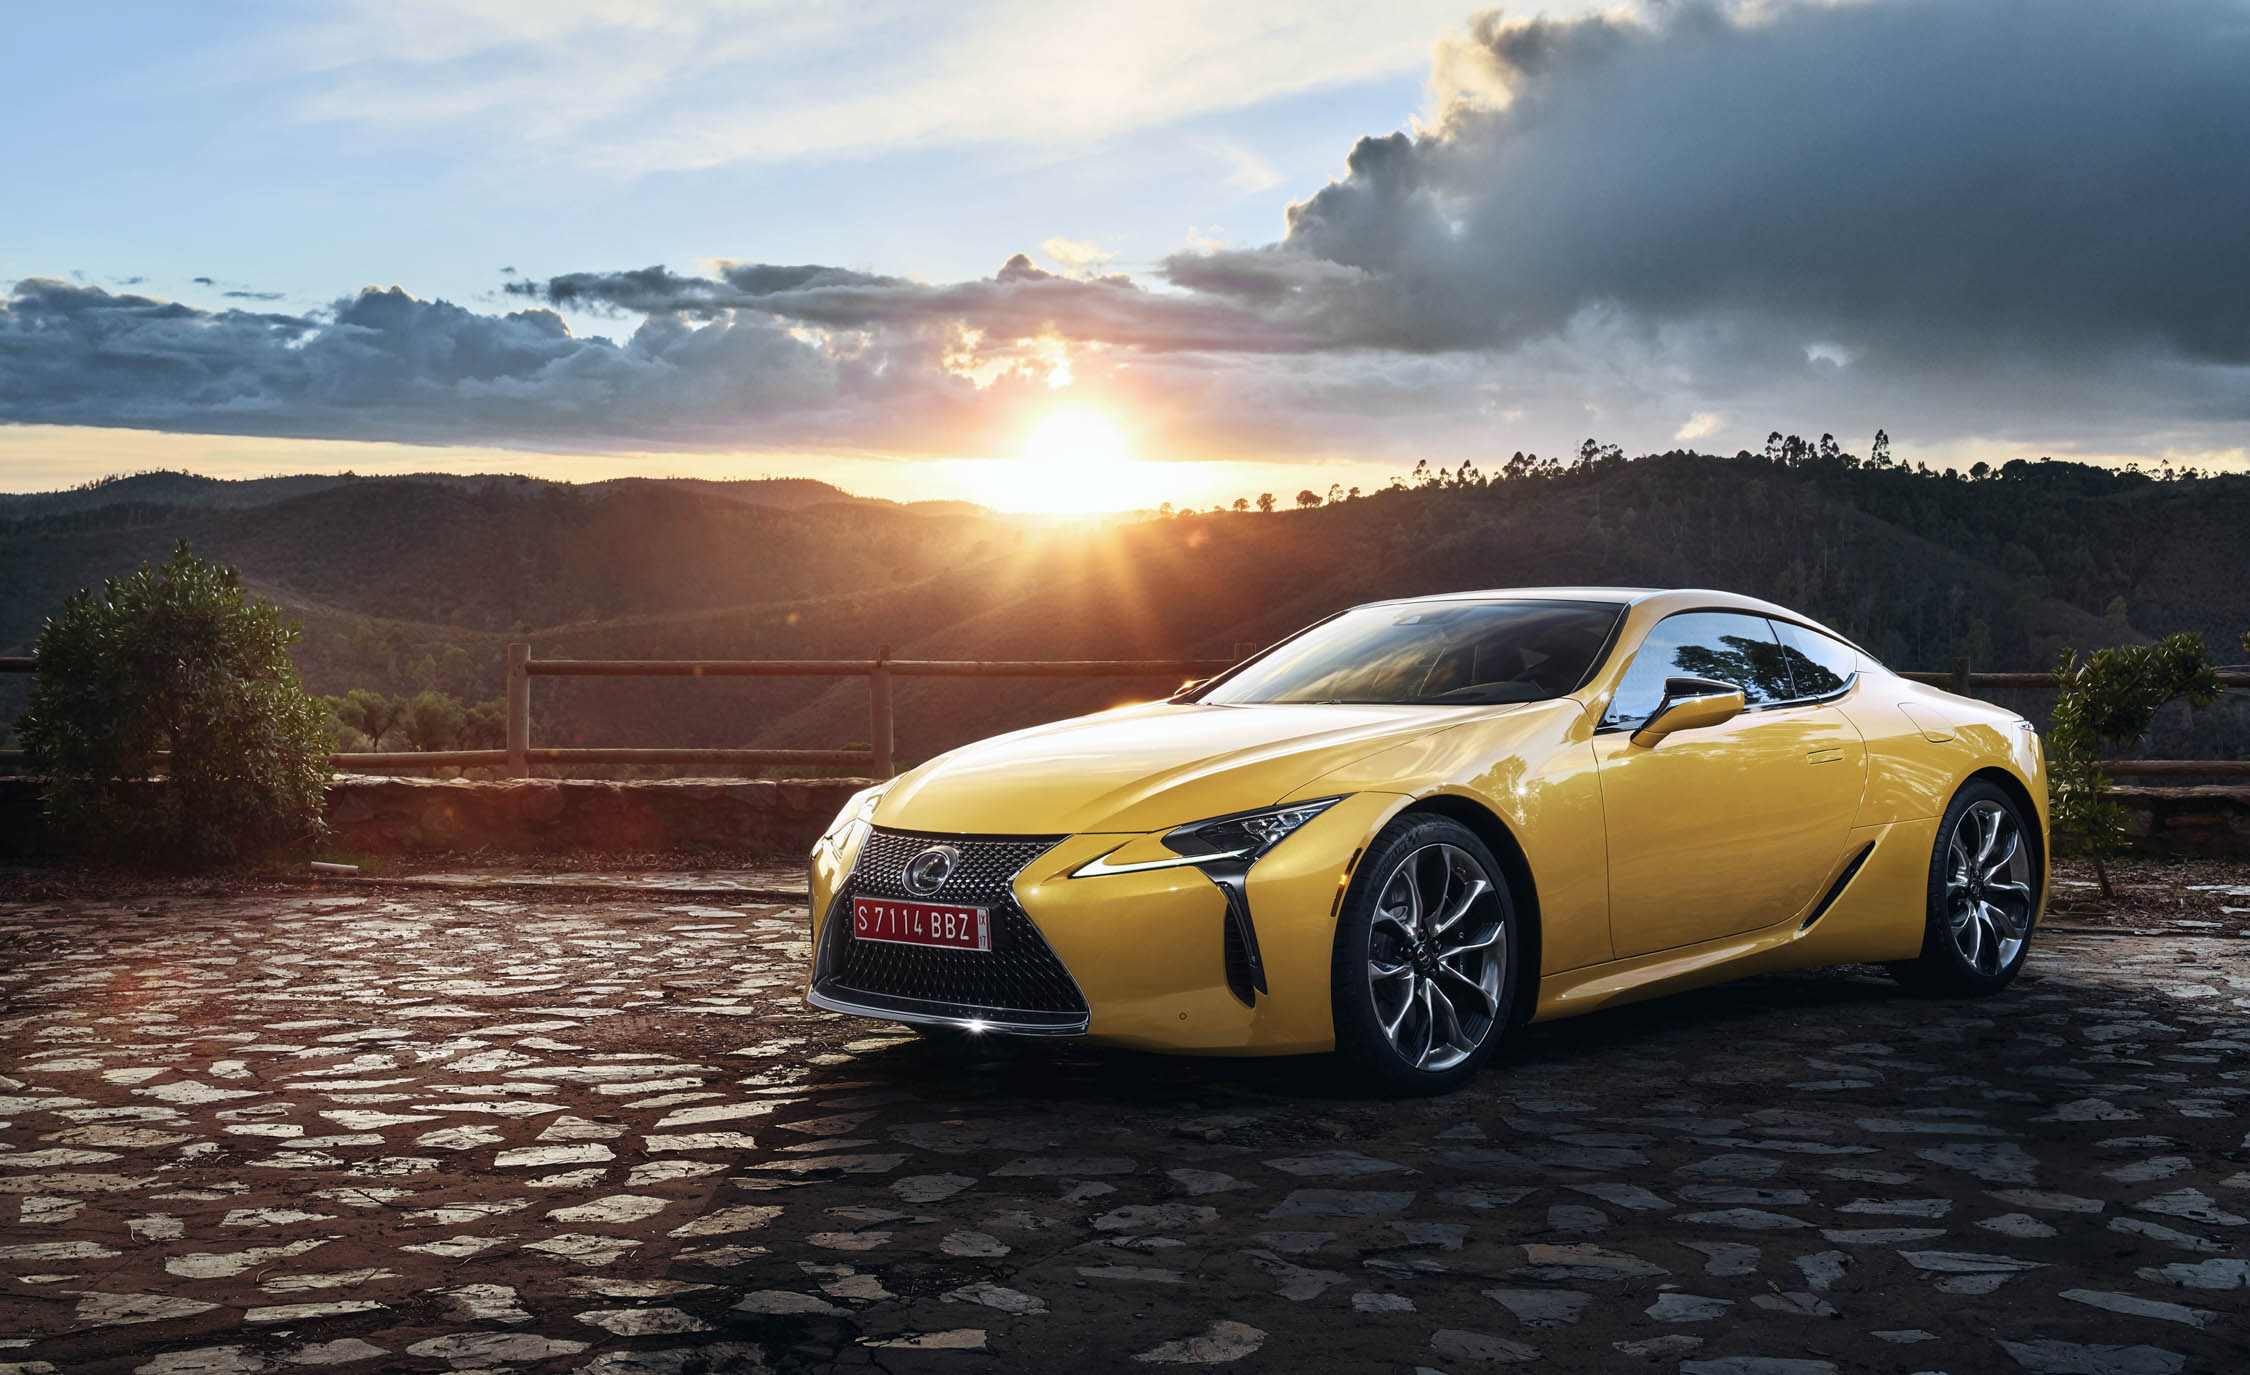 New 2018 Lexus Lc500 Exterior (Photo 78 of 84)